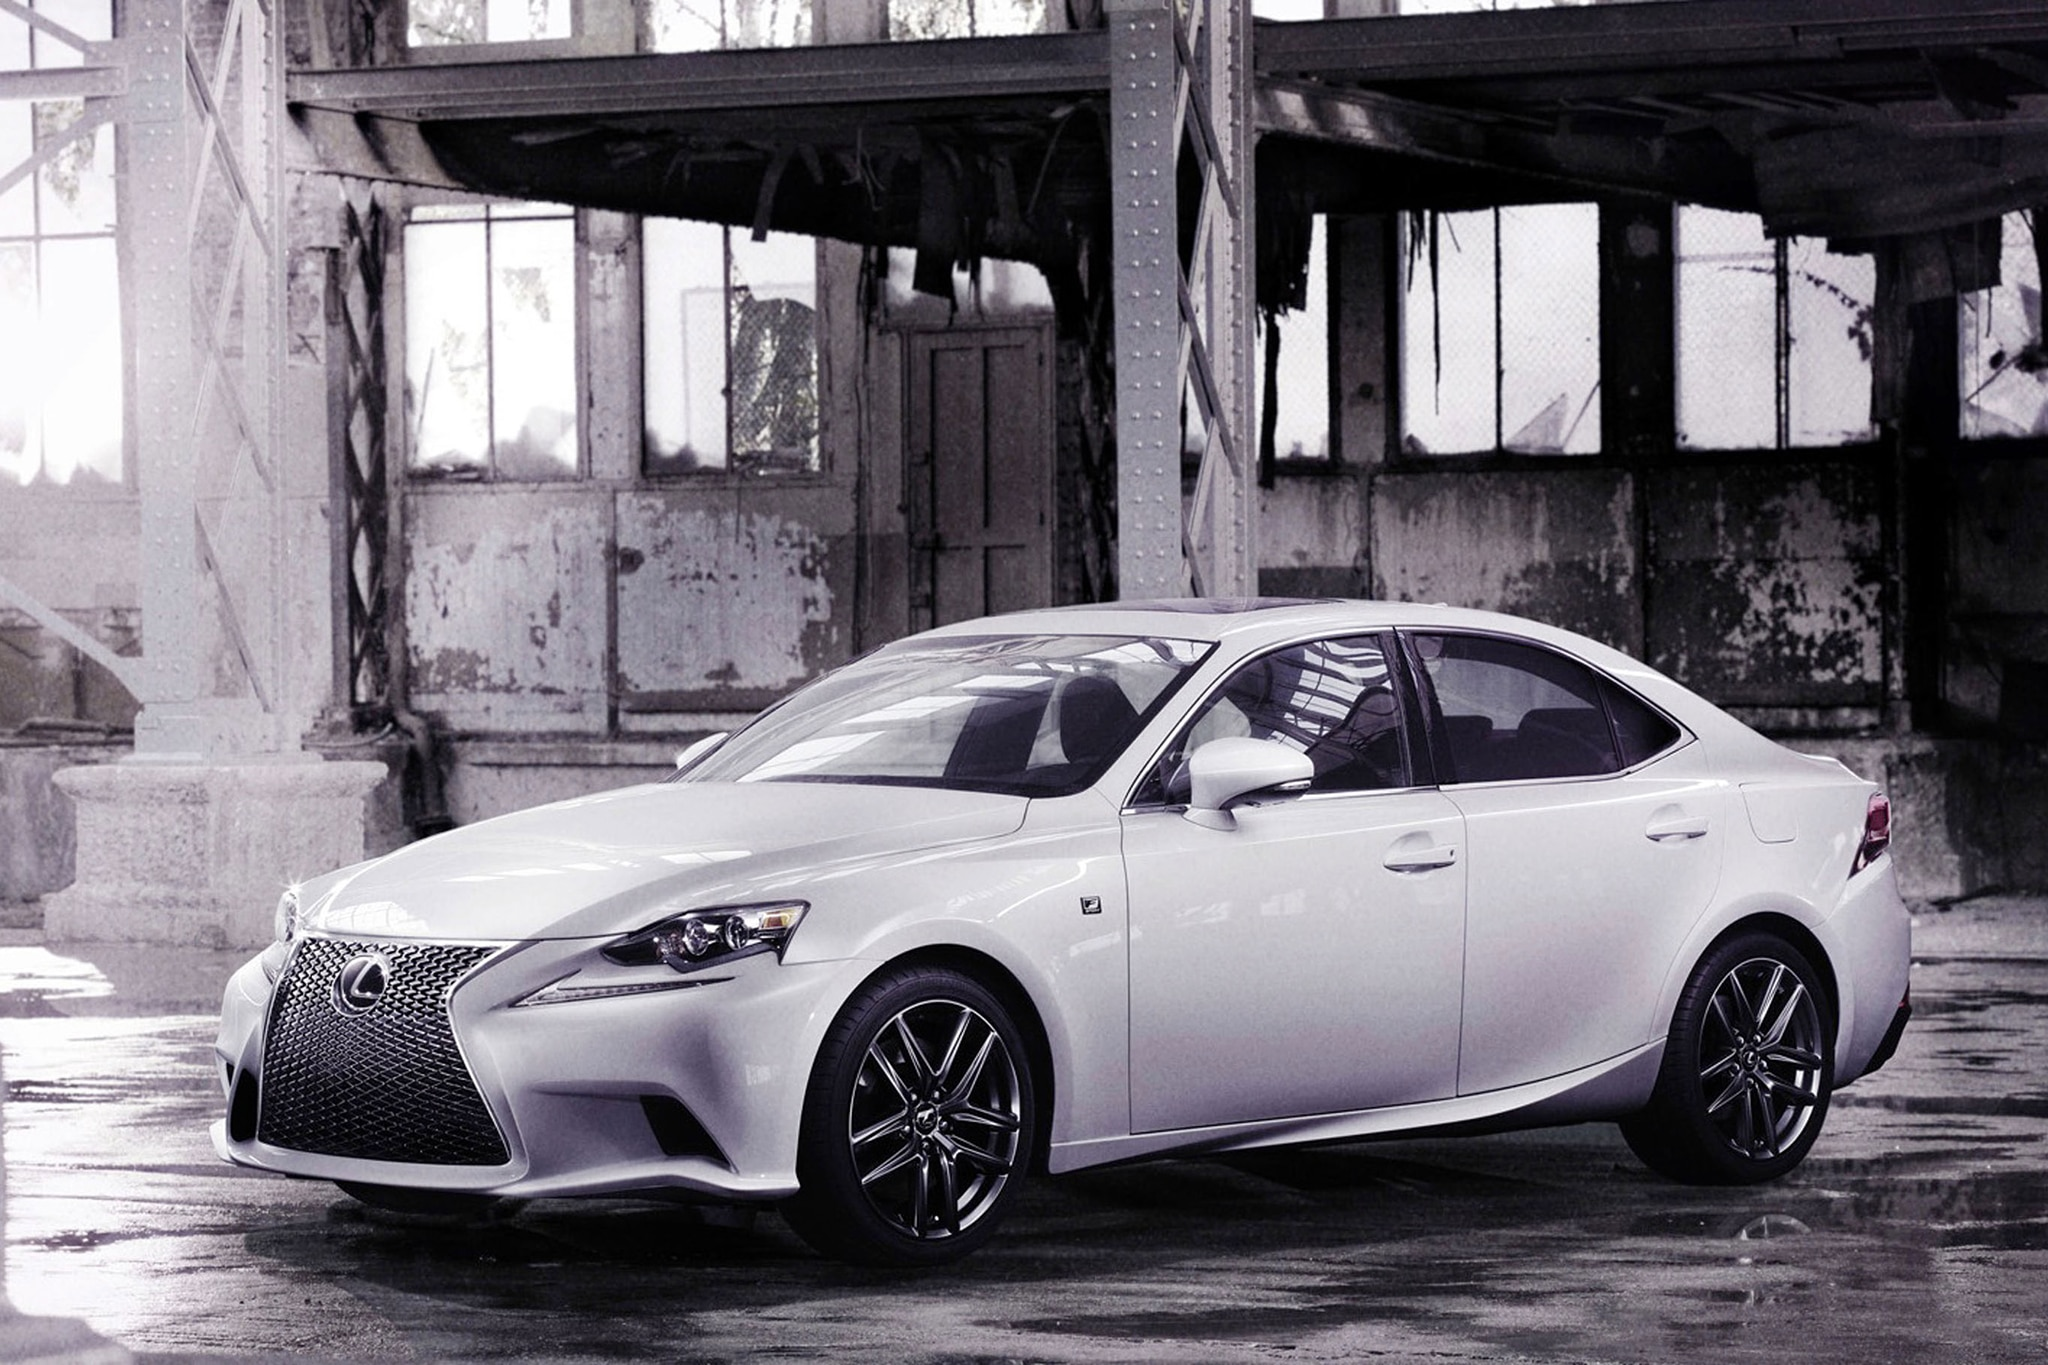 Japanese Spec 2014 Lexus IS F Sport Spiced Up With TRD Parts